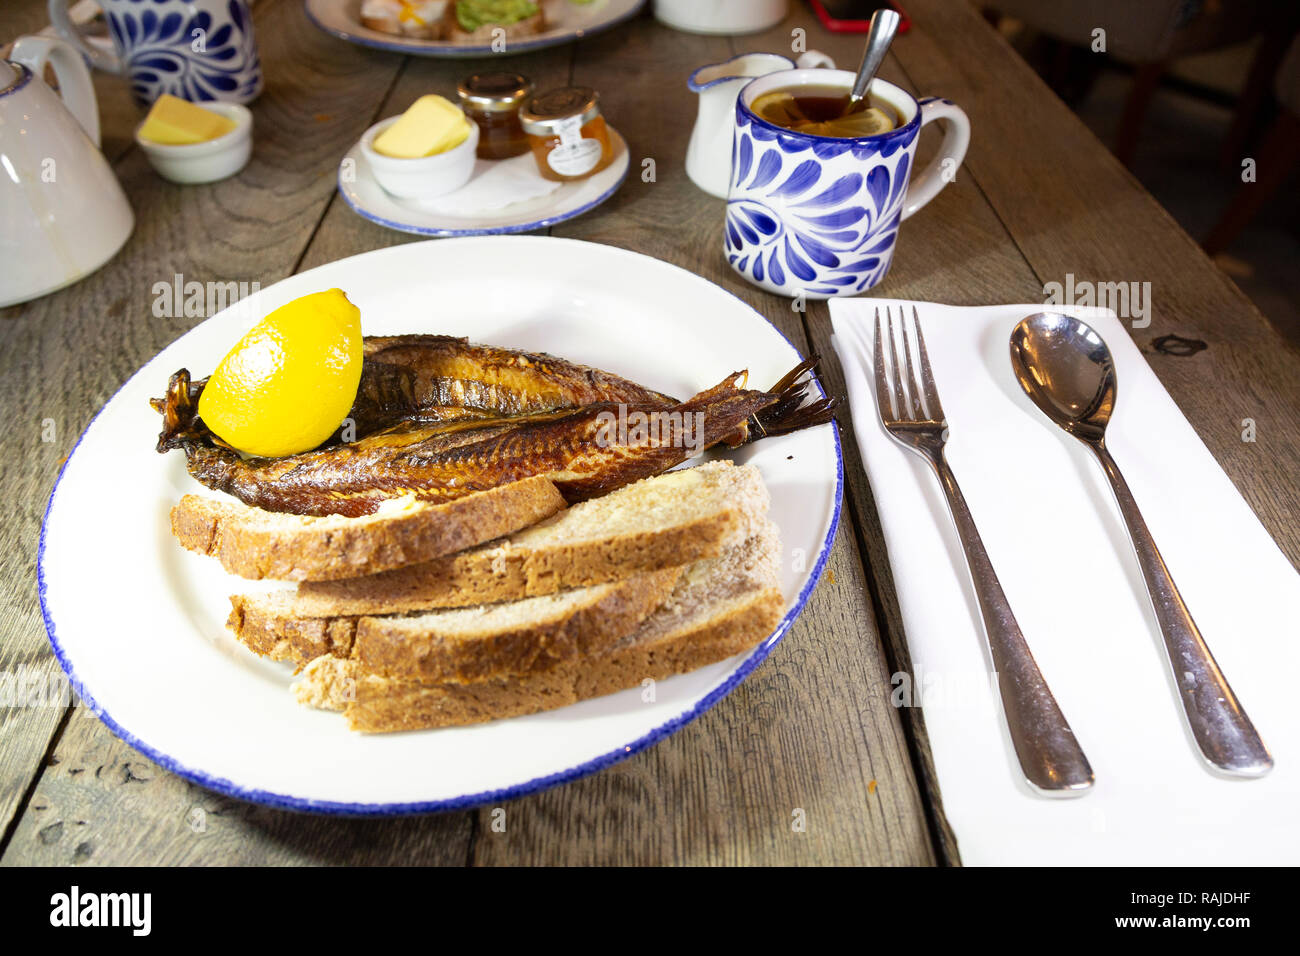 Craster kipper served with toast for breakfast in Northumberland, England. The Northumbrian delicacy is served with Earl Grey tea. - Stock Image